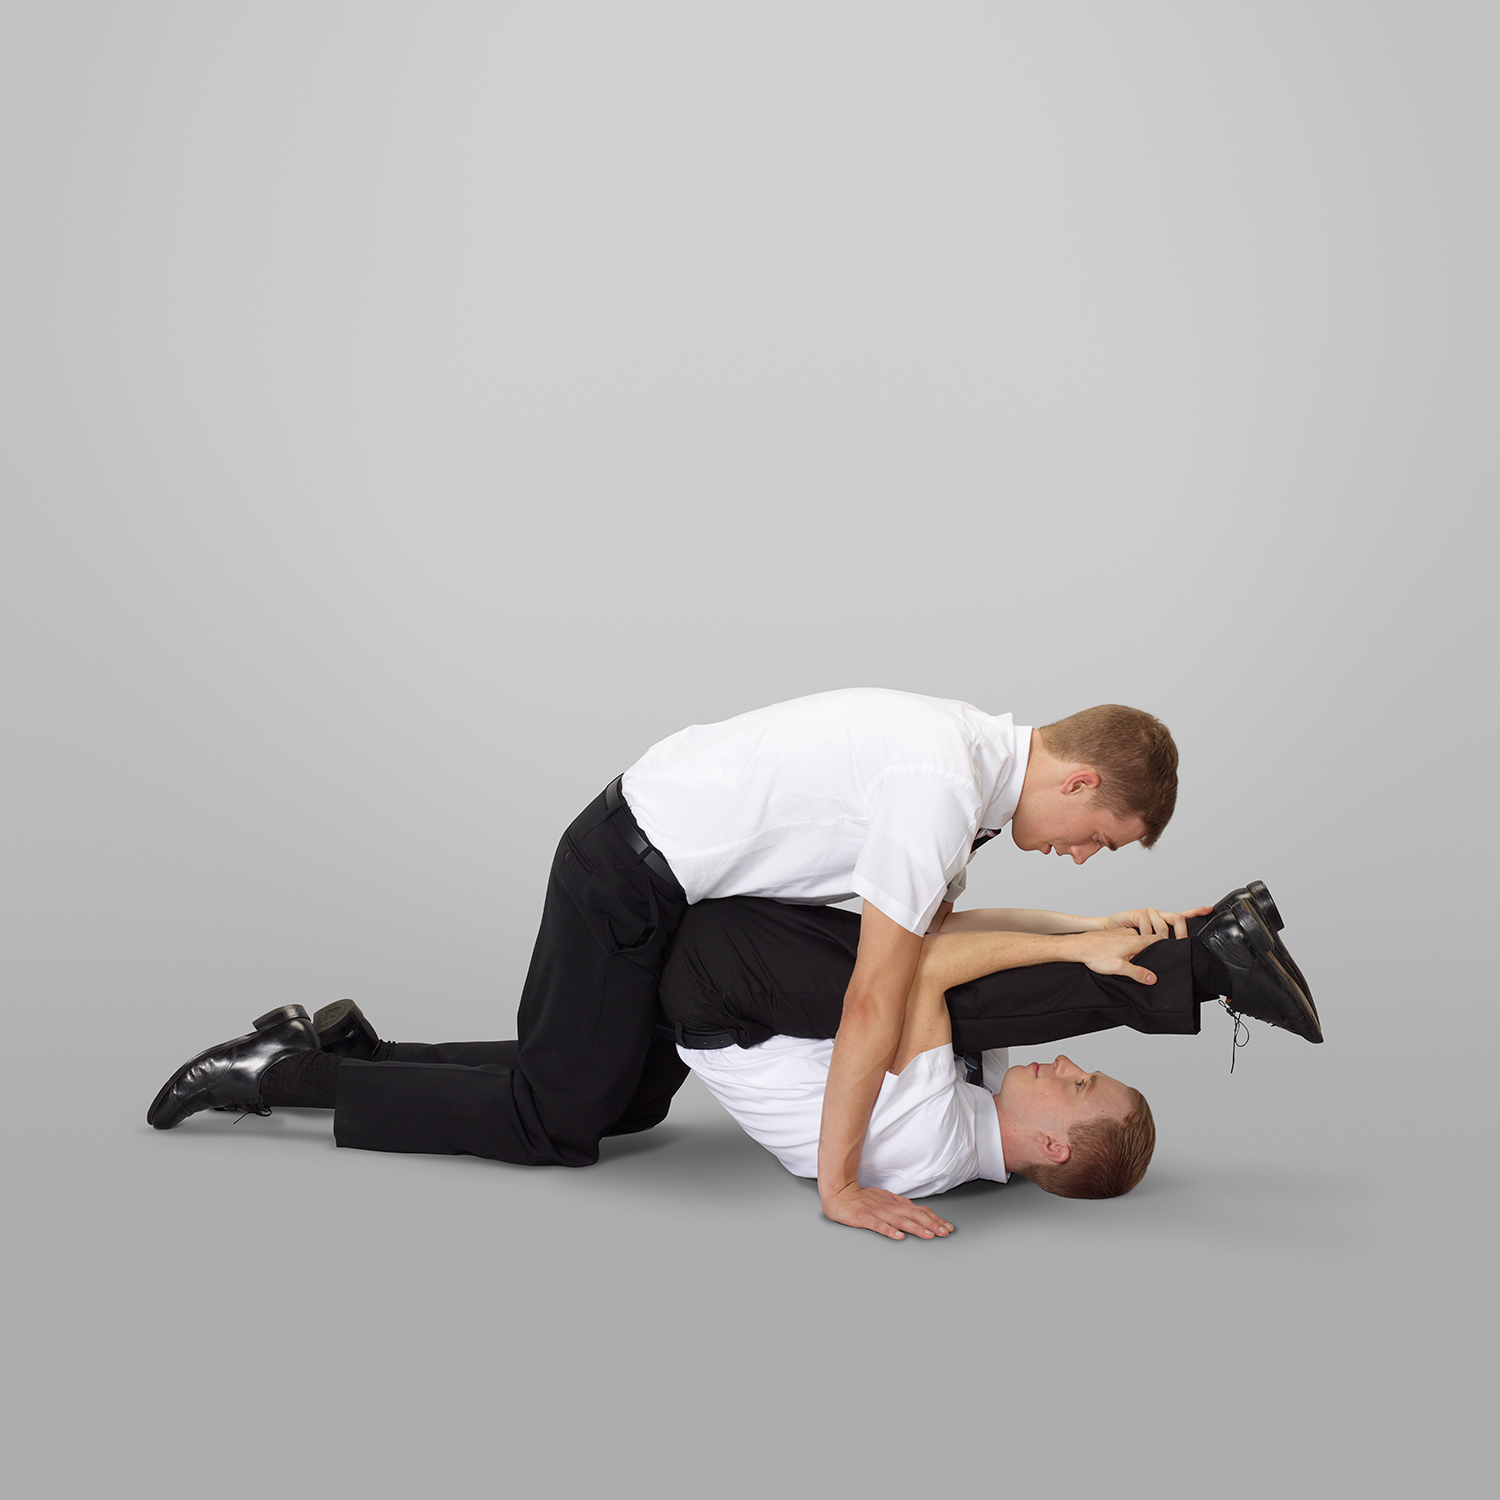 Classical missionary position